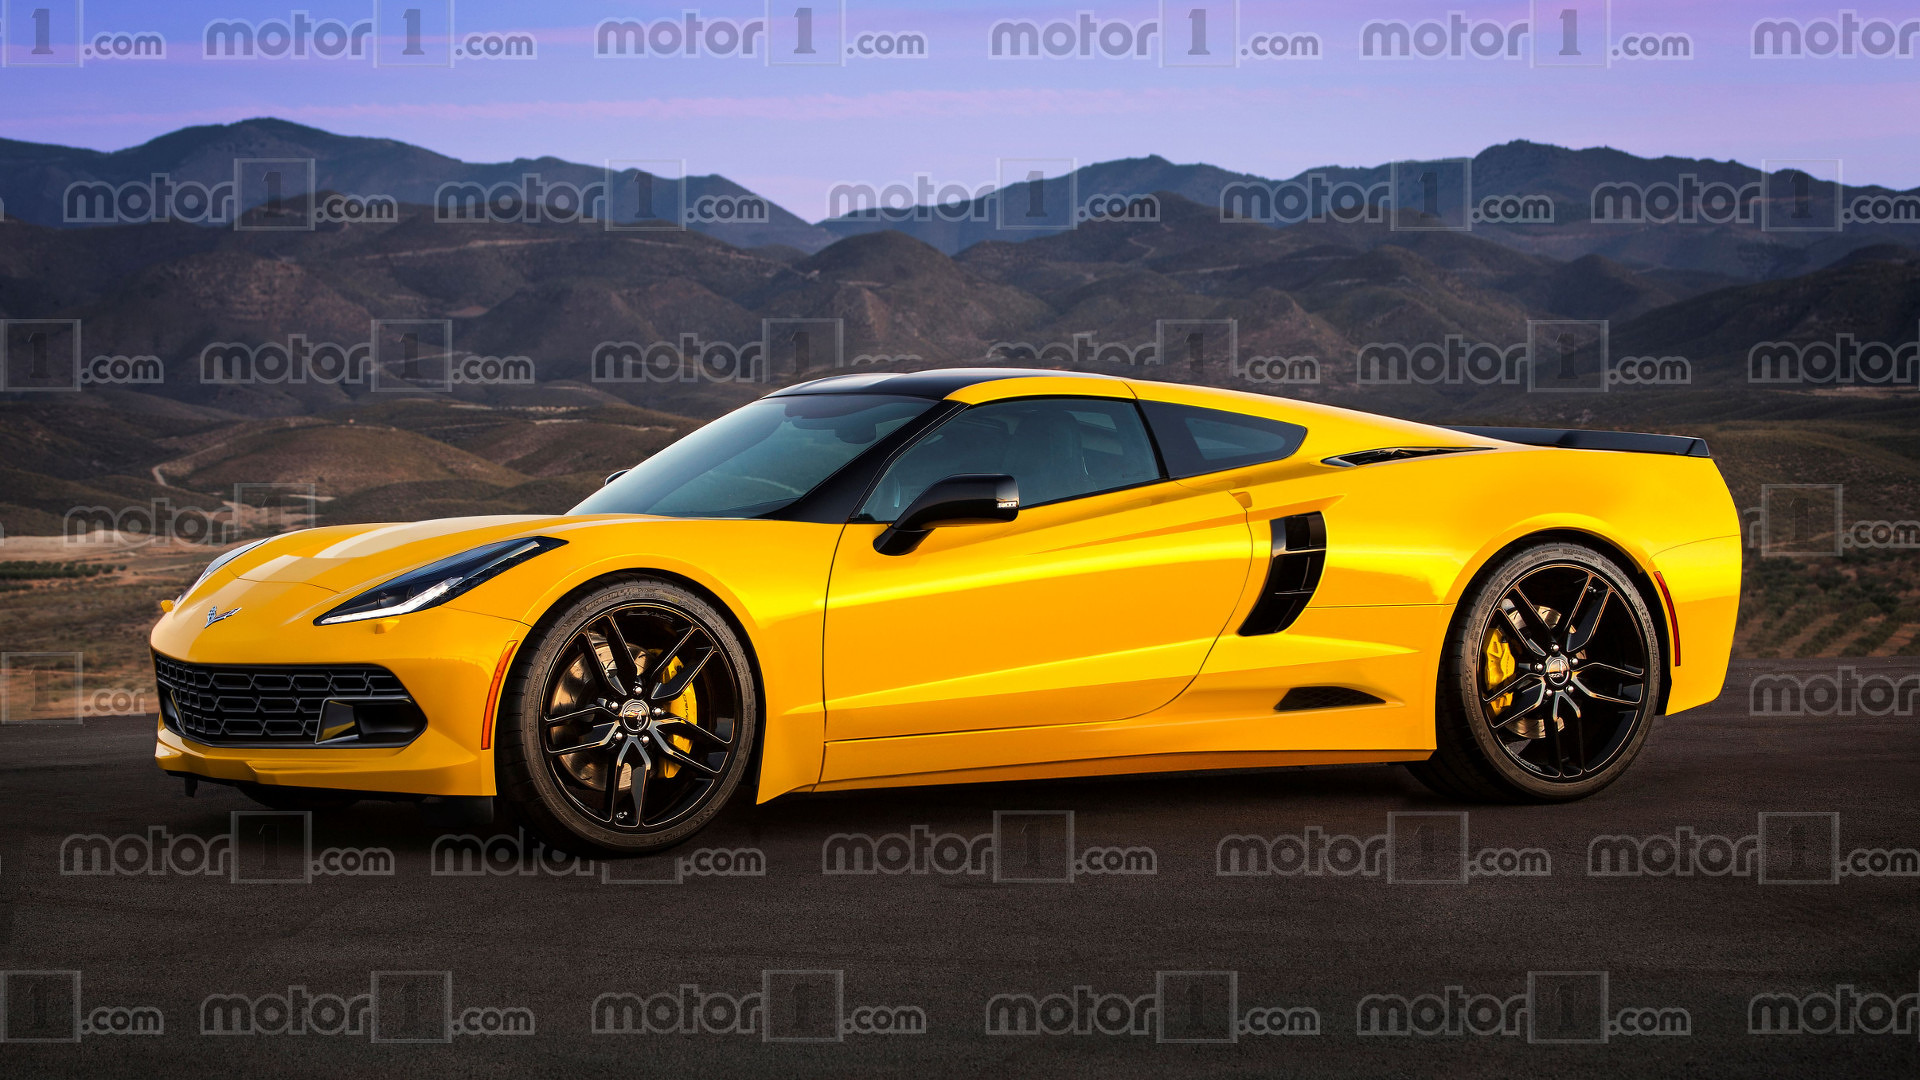 Chevy Teases Mid Engined Corvette To Dealers